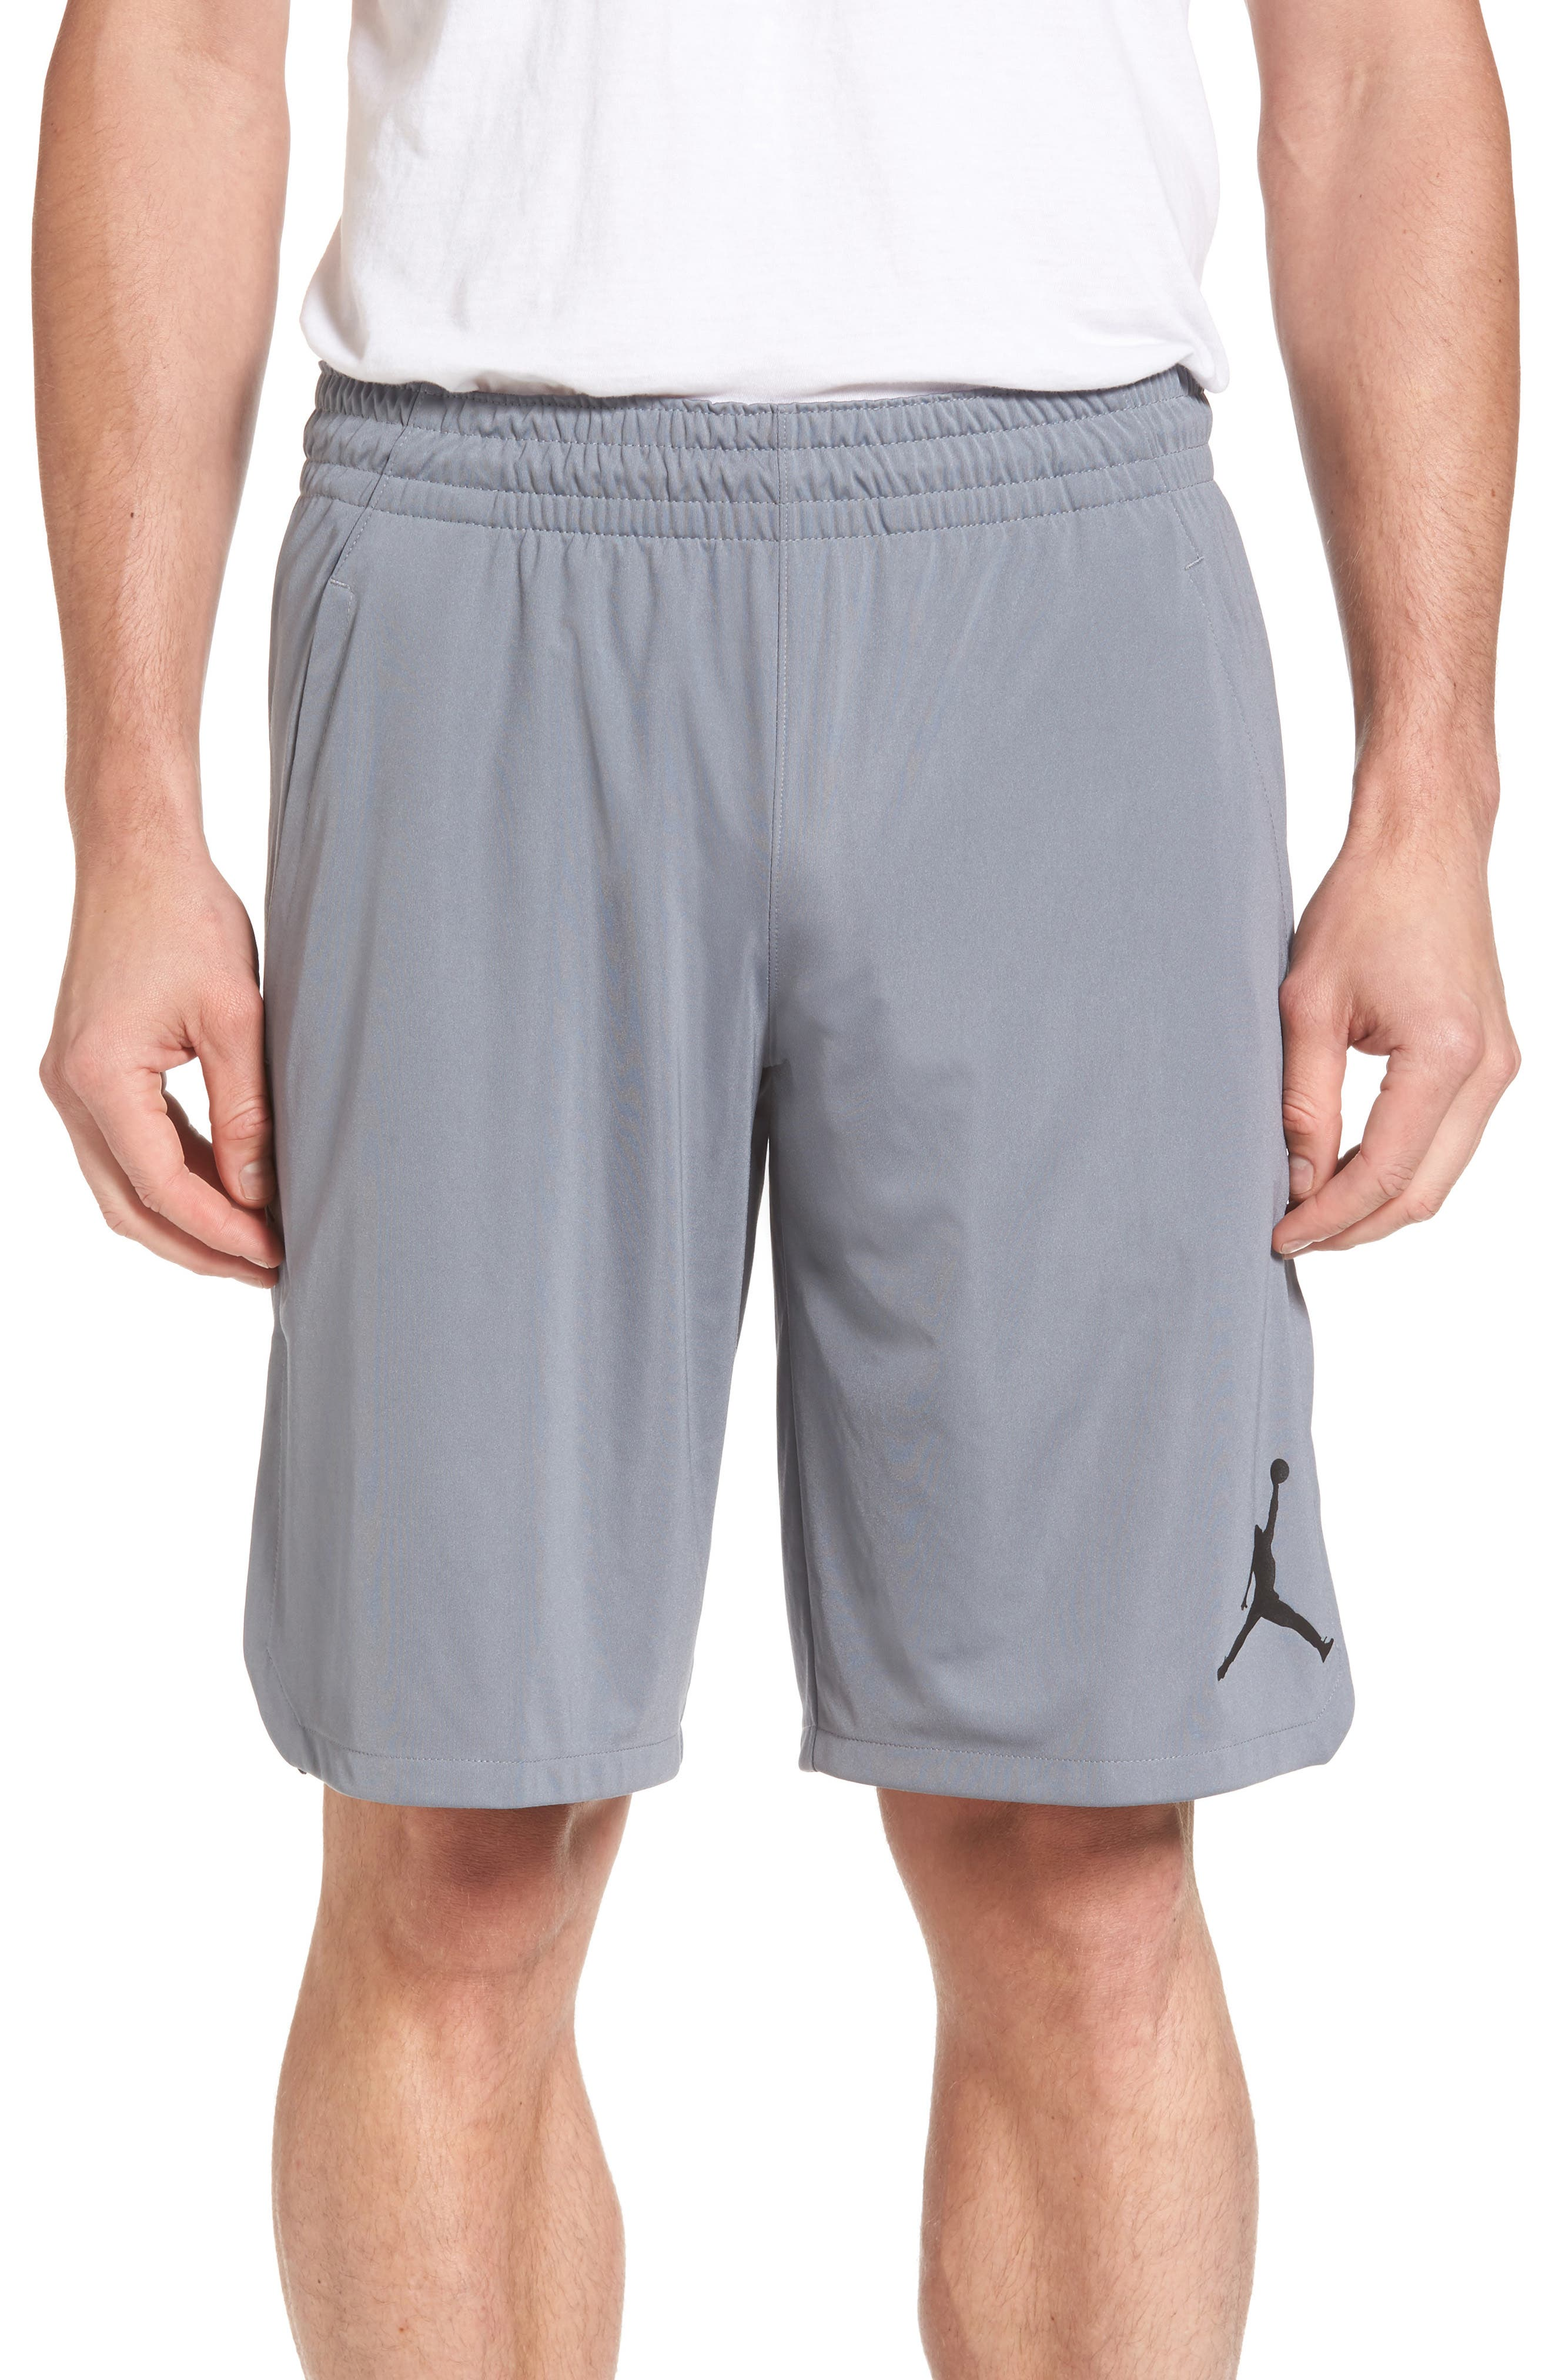 Nike Jordan 23 Alpha Dry Knit Athletic Shorts